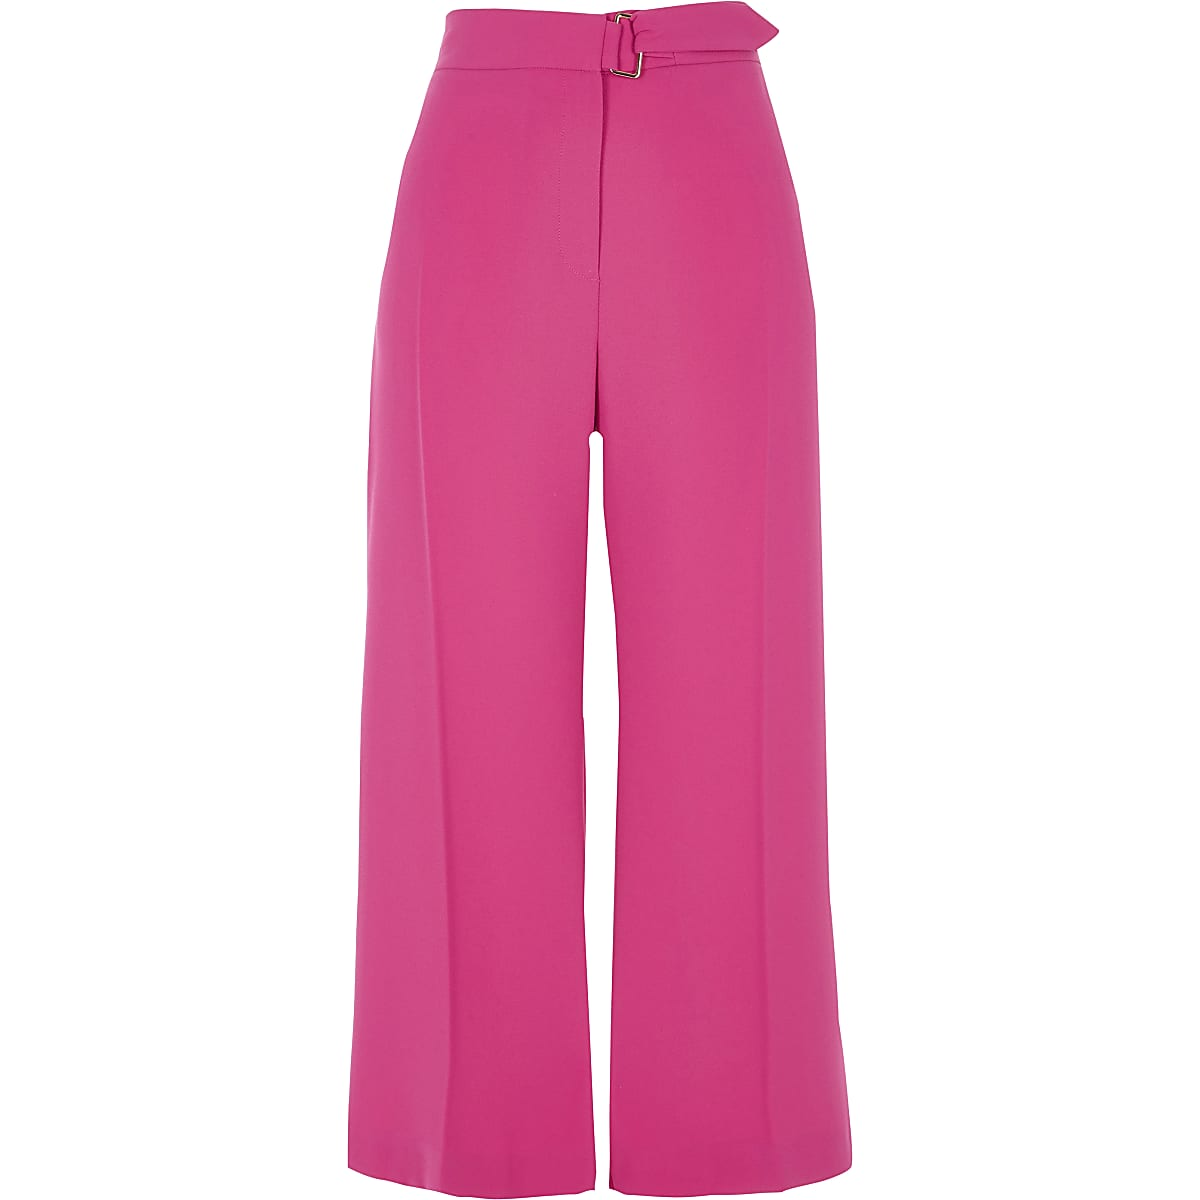 Bright pink belted culottes